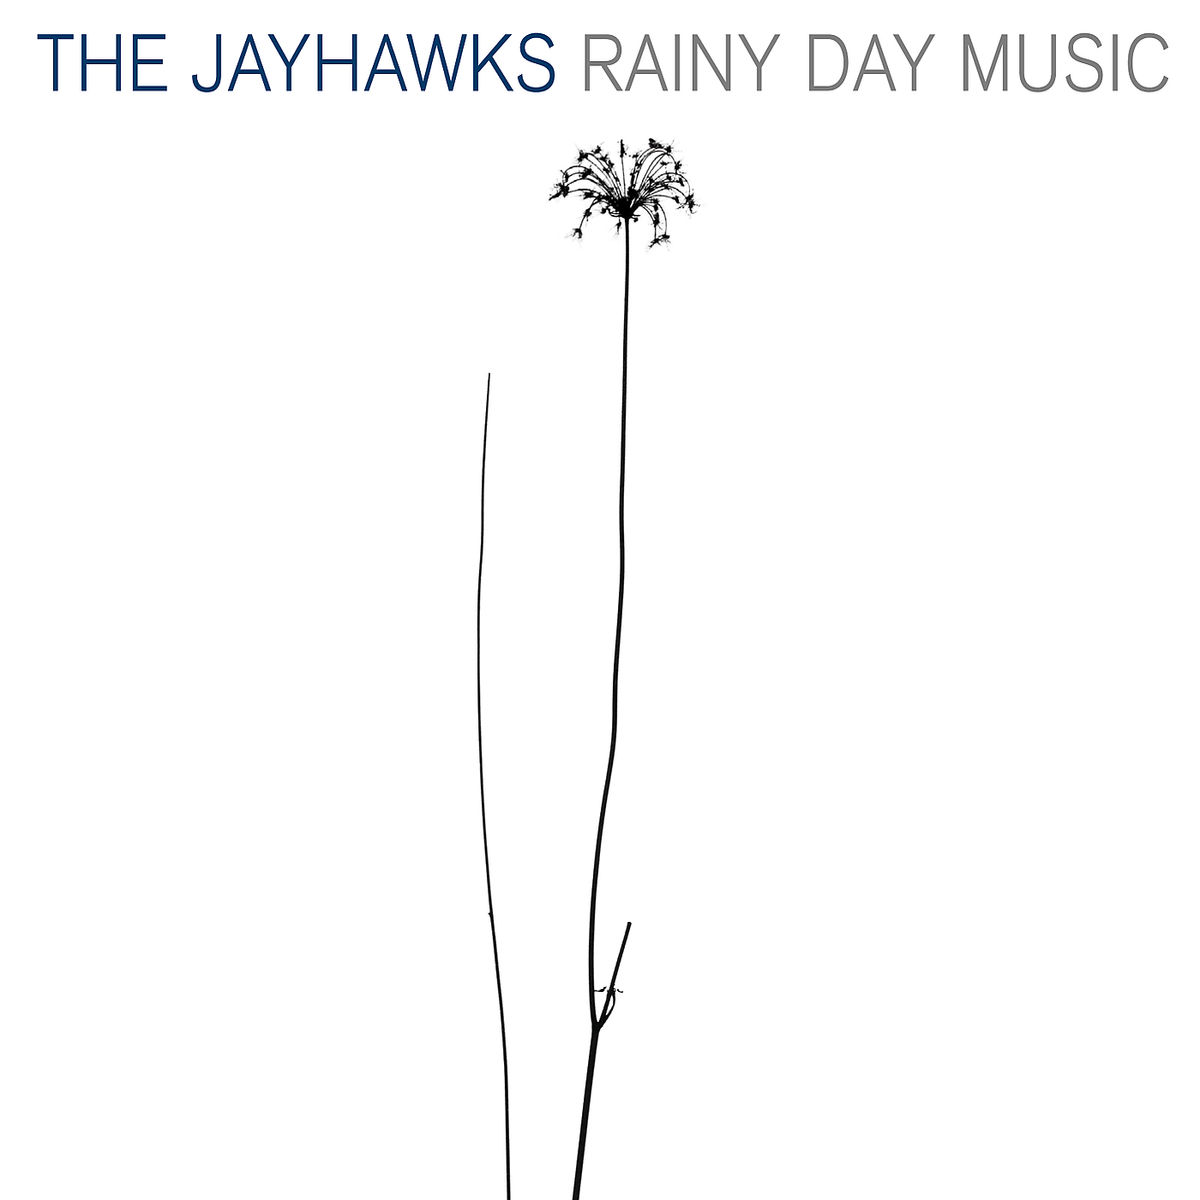 Rainy Day Music - Jayhawks - Musik - Pid - 0044007713624 - 7/4-2003